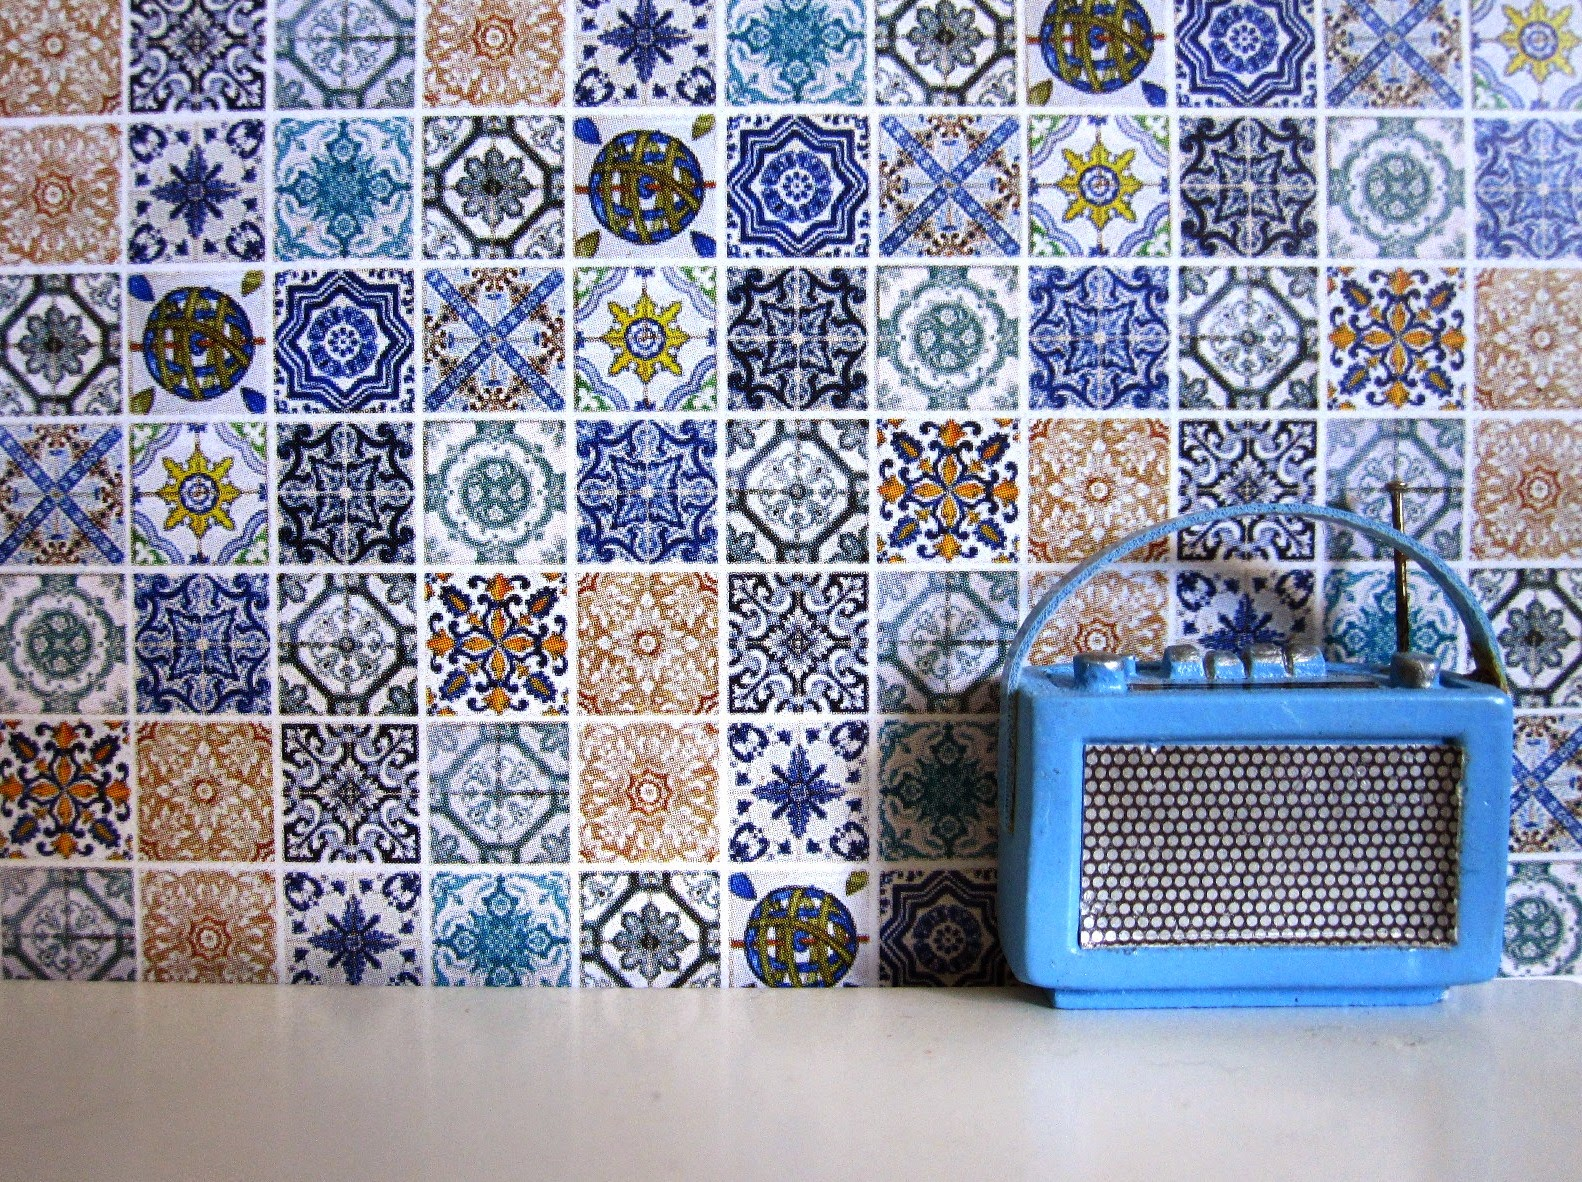 Modern dolls house miniature tiled wall in a selection of blue and white tiles. In front of it is a miniature Roberts radio in blue.